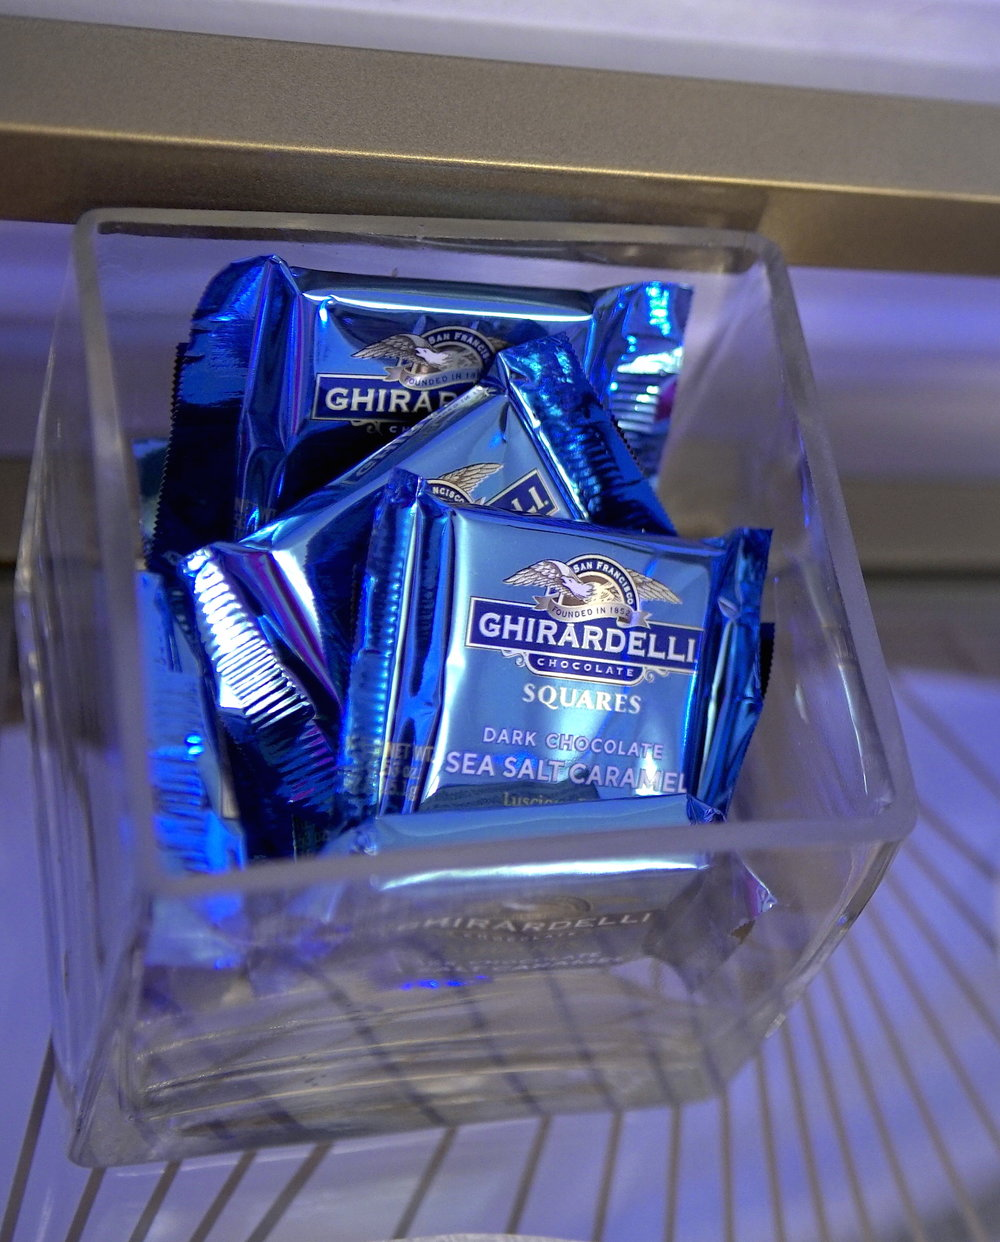 These dark chocolate and sea salt caramel Ghirardelli squares were a perfect addition to this month's bar cart.